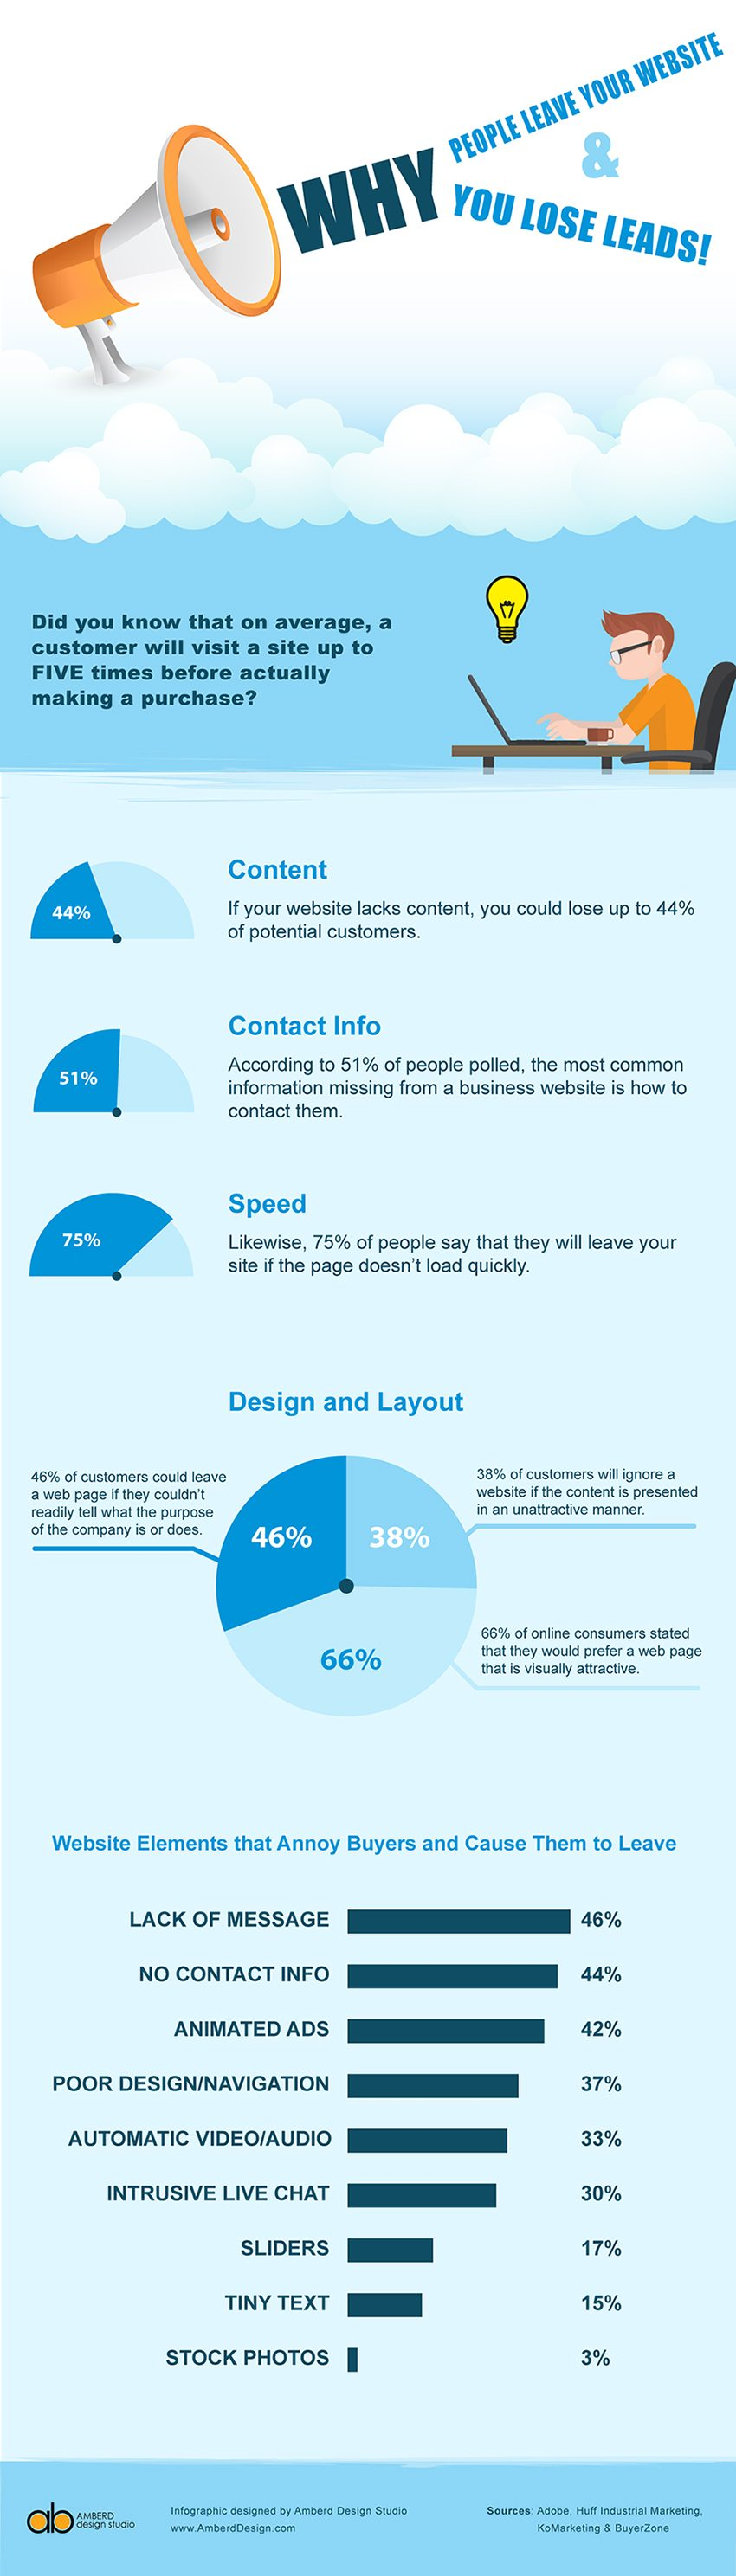 Why Visitors Leave Your Website: 9 Annoying Features You Need to Fix [Infographic] | Social Media Today